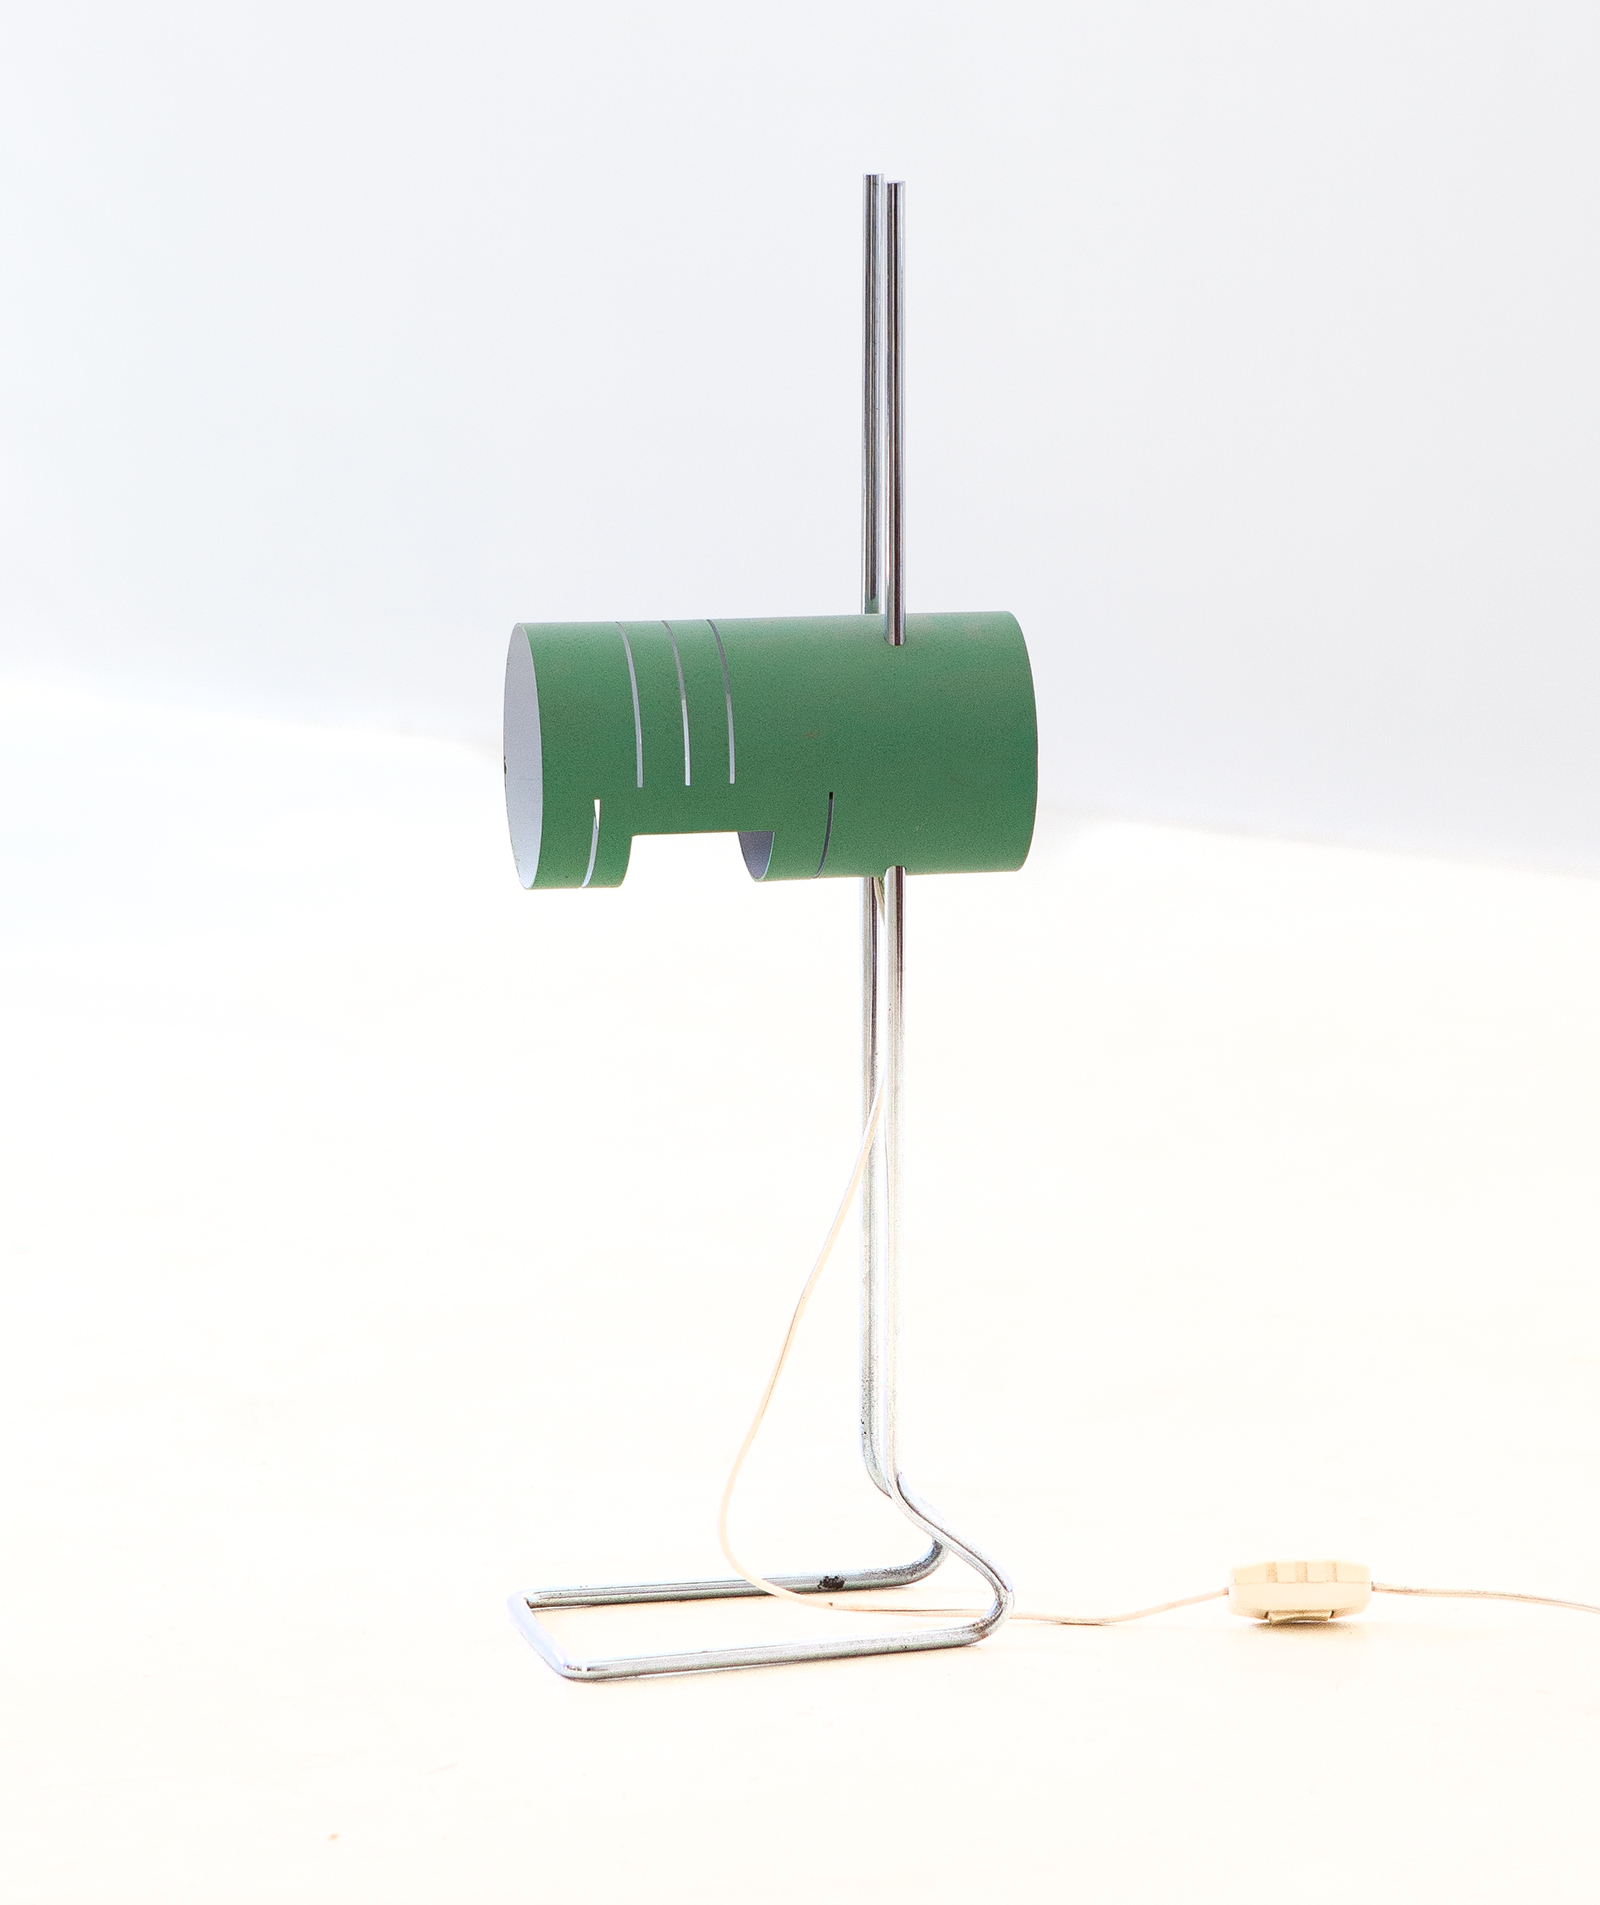 1970s-italian-gree-and-chrome-desk-lamp-1-l90